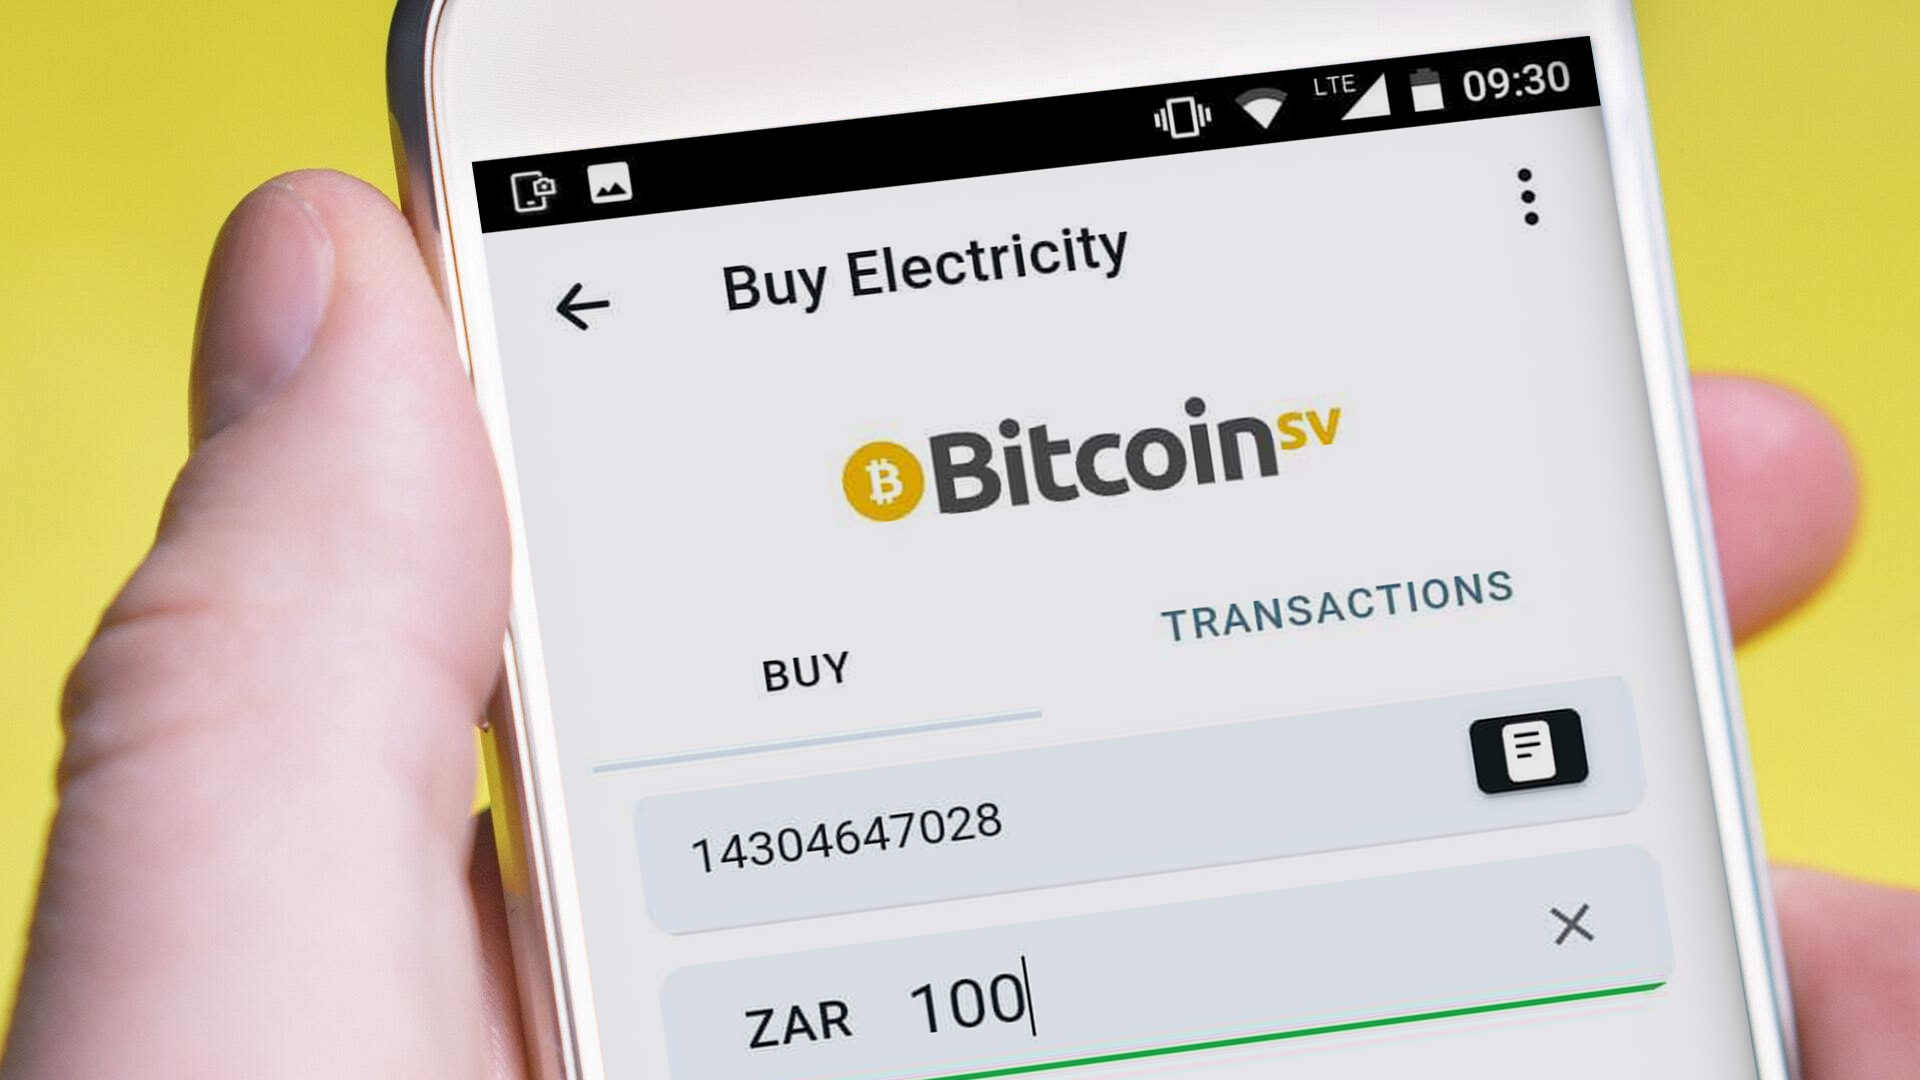 Being able to buy electricity, data and airtime with Bitcoin SV using the Centbee app